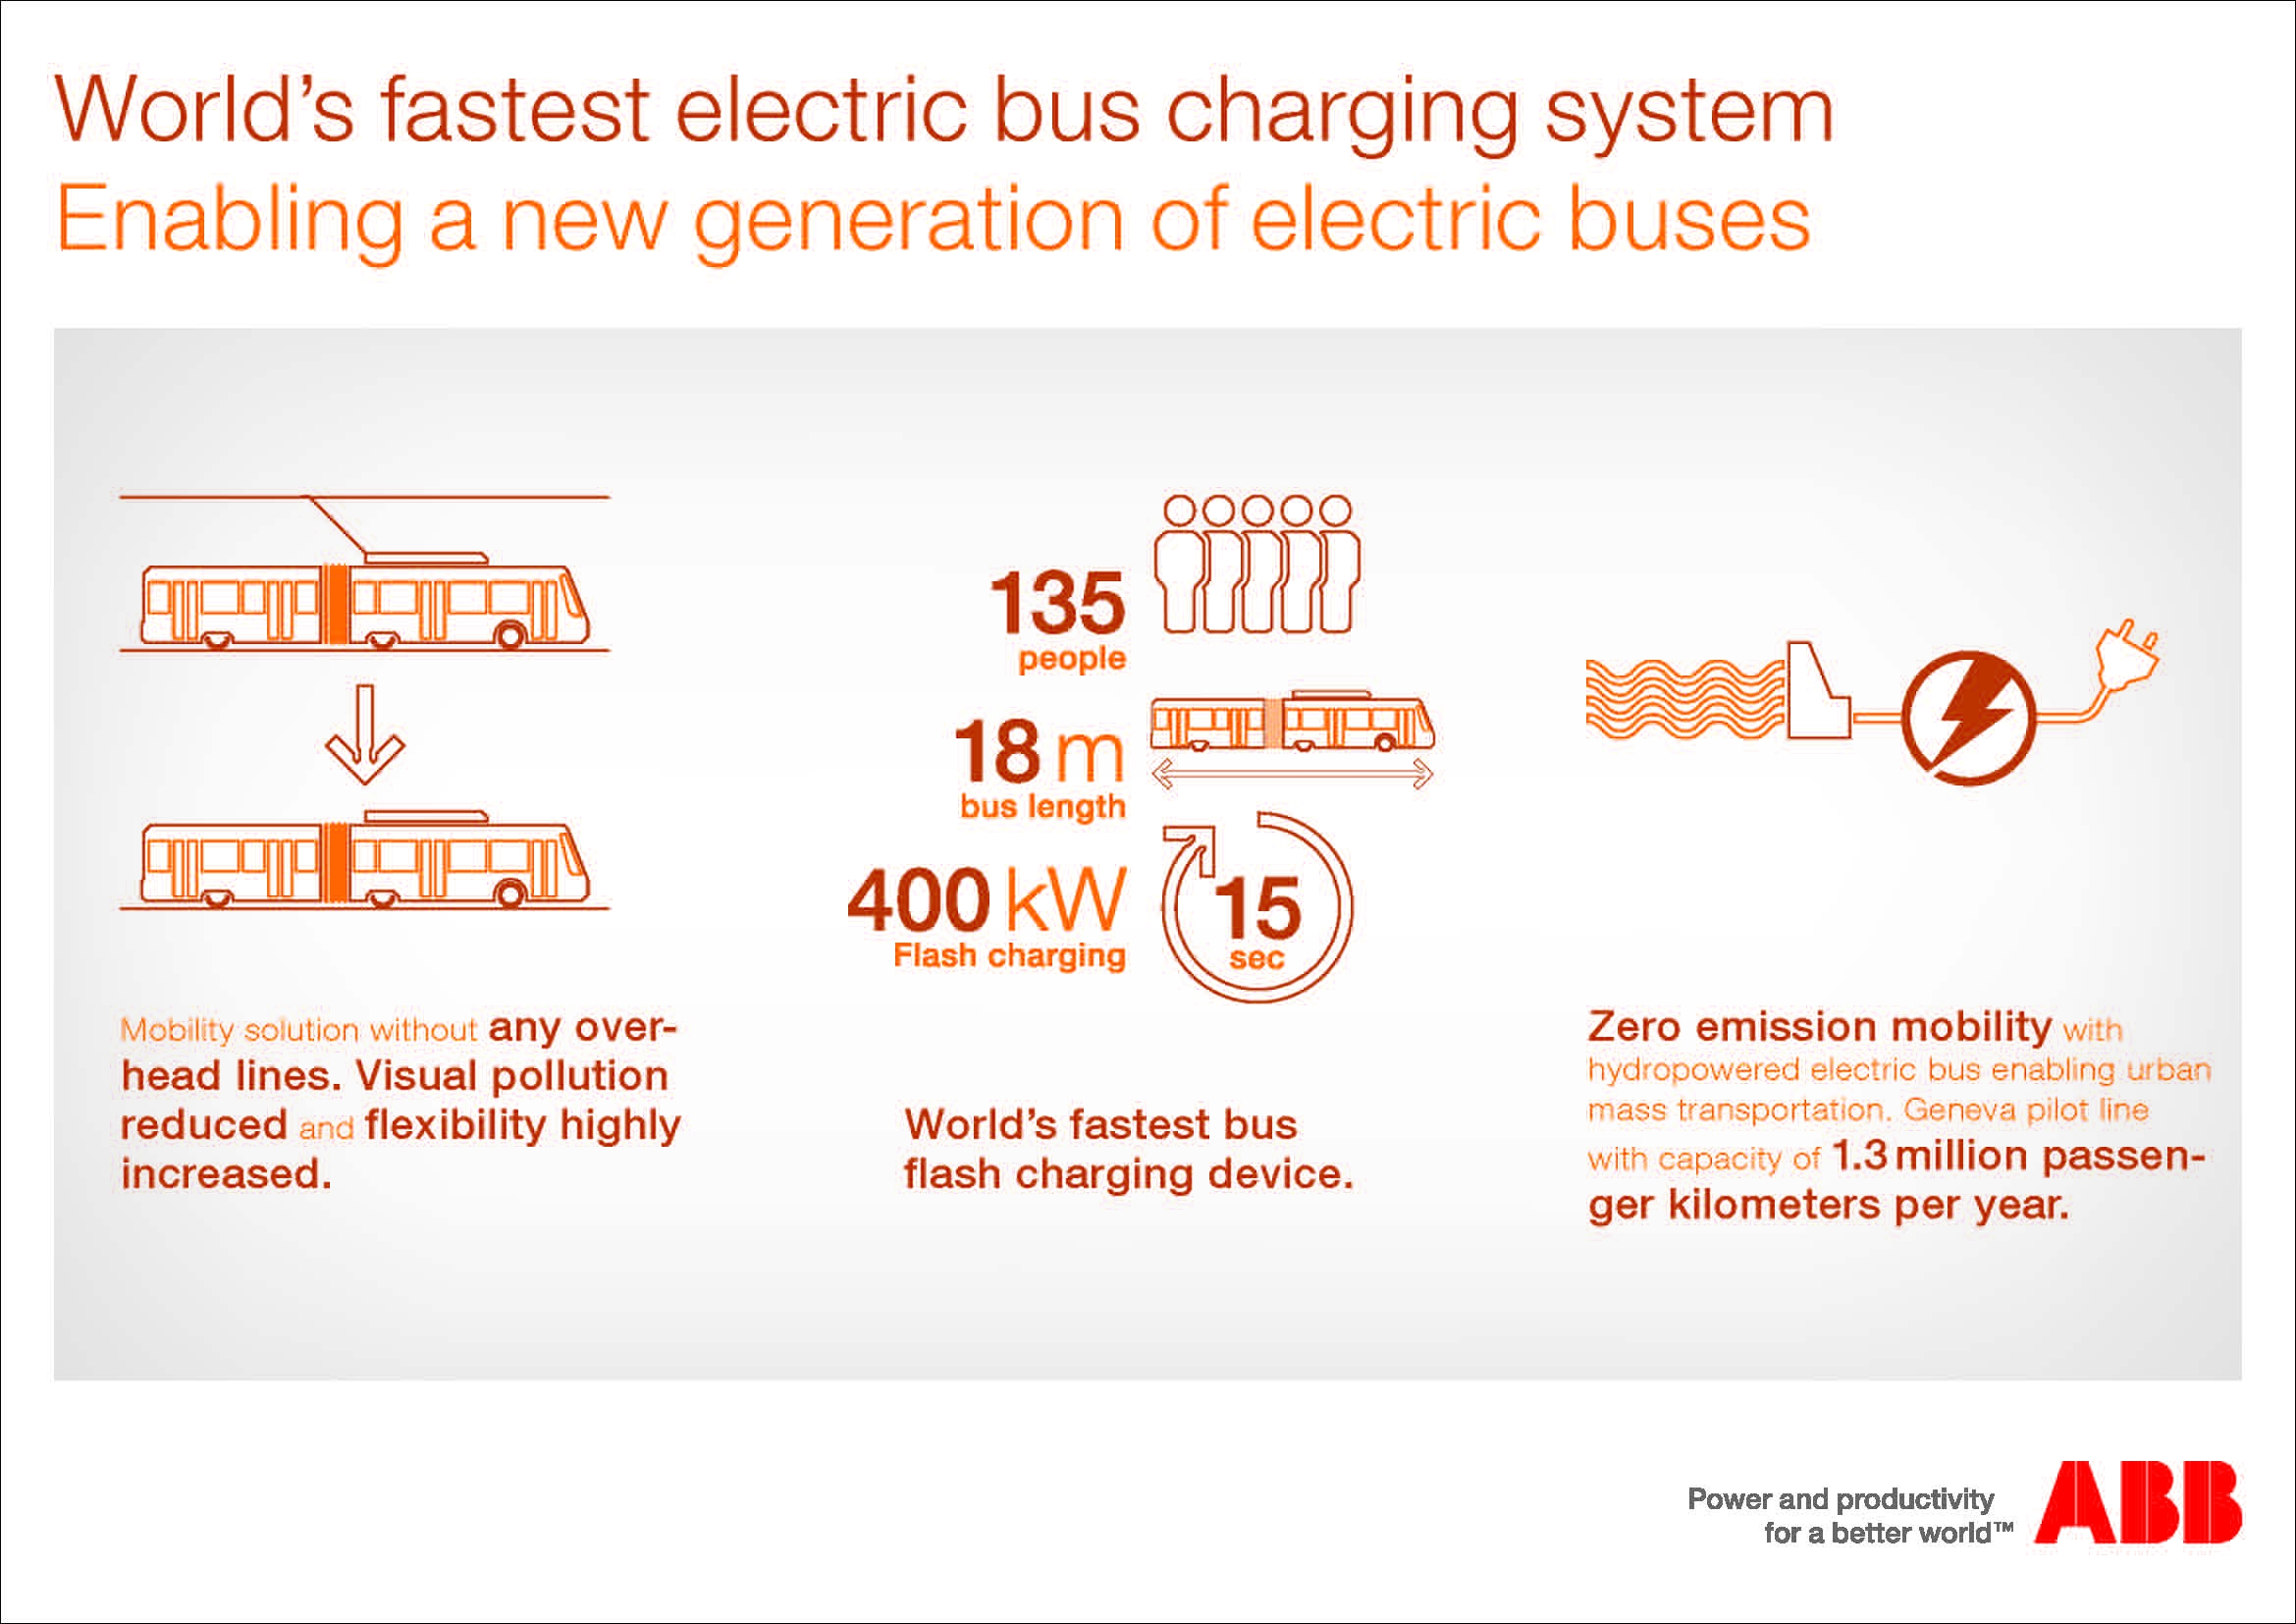 abb_infographic_electric_bus_geneva_2013_eu_2339